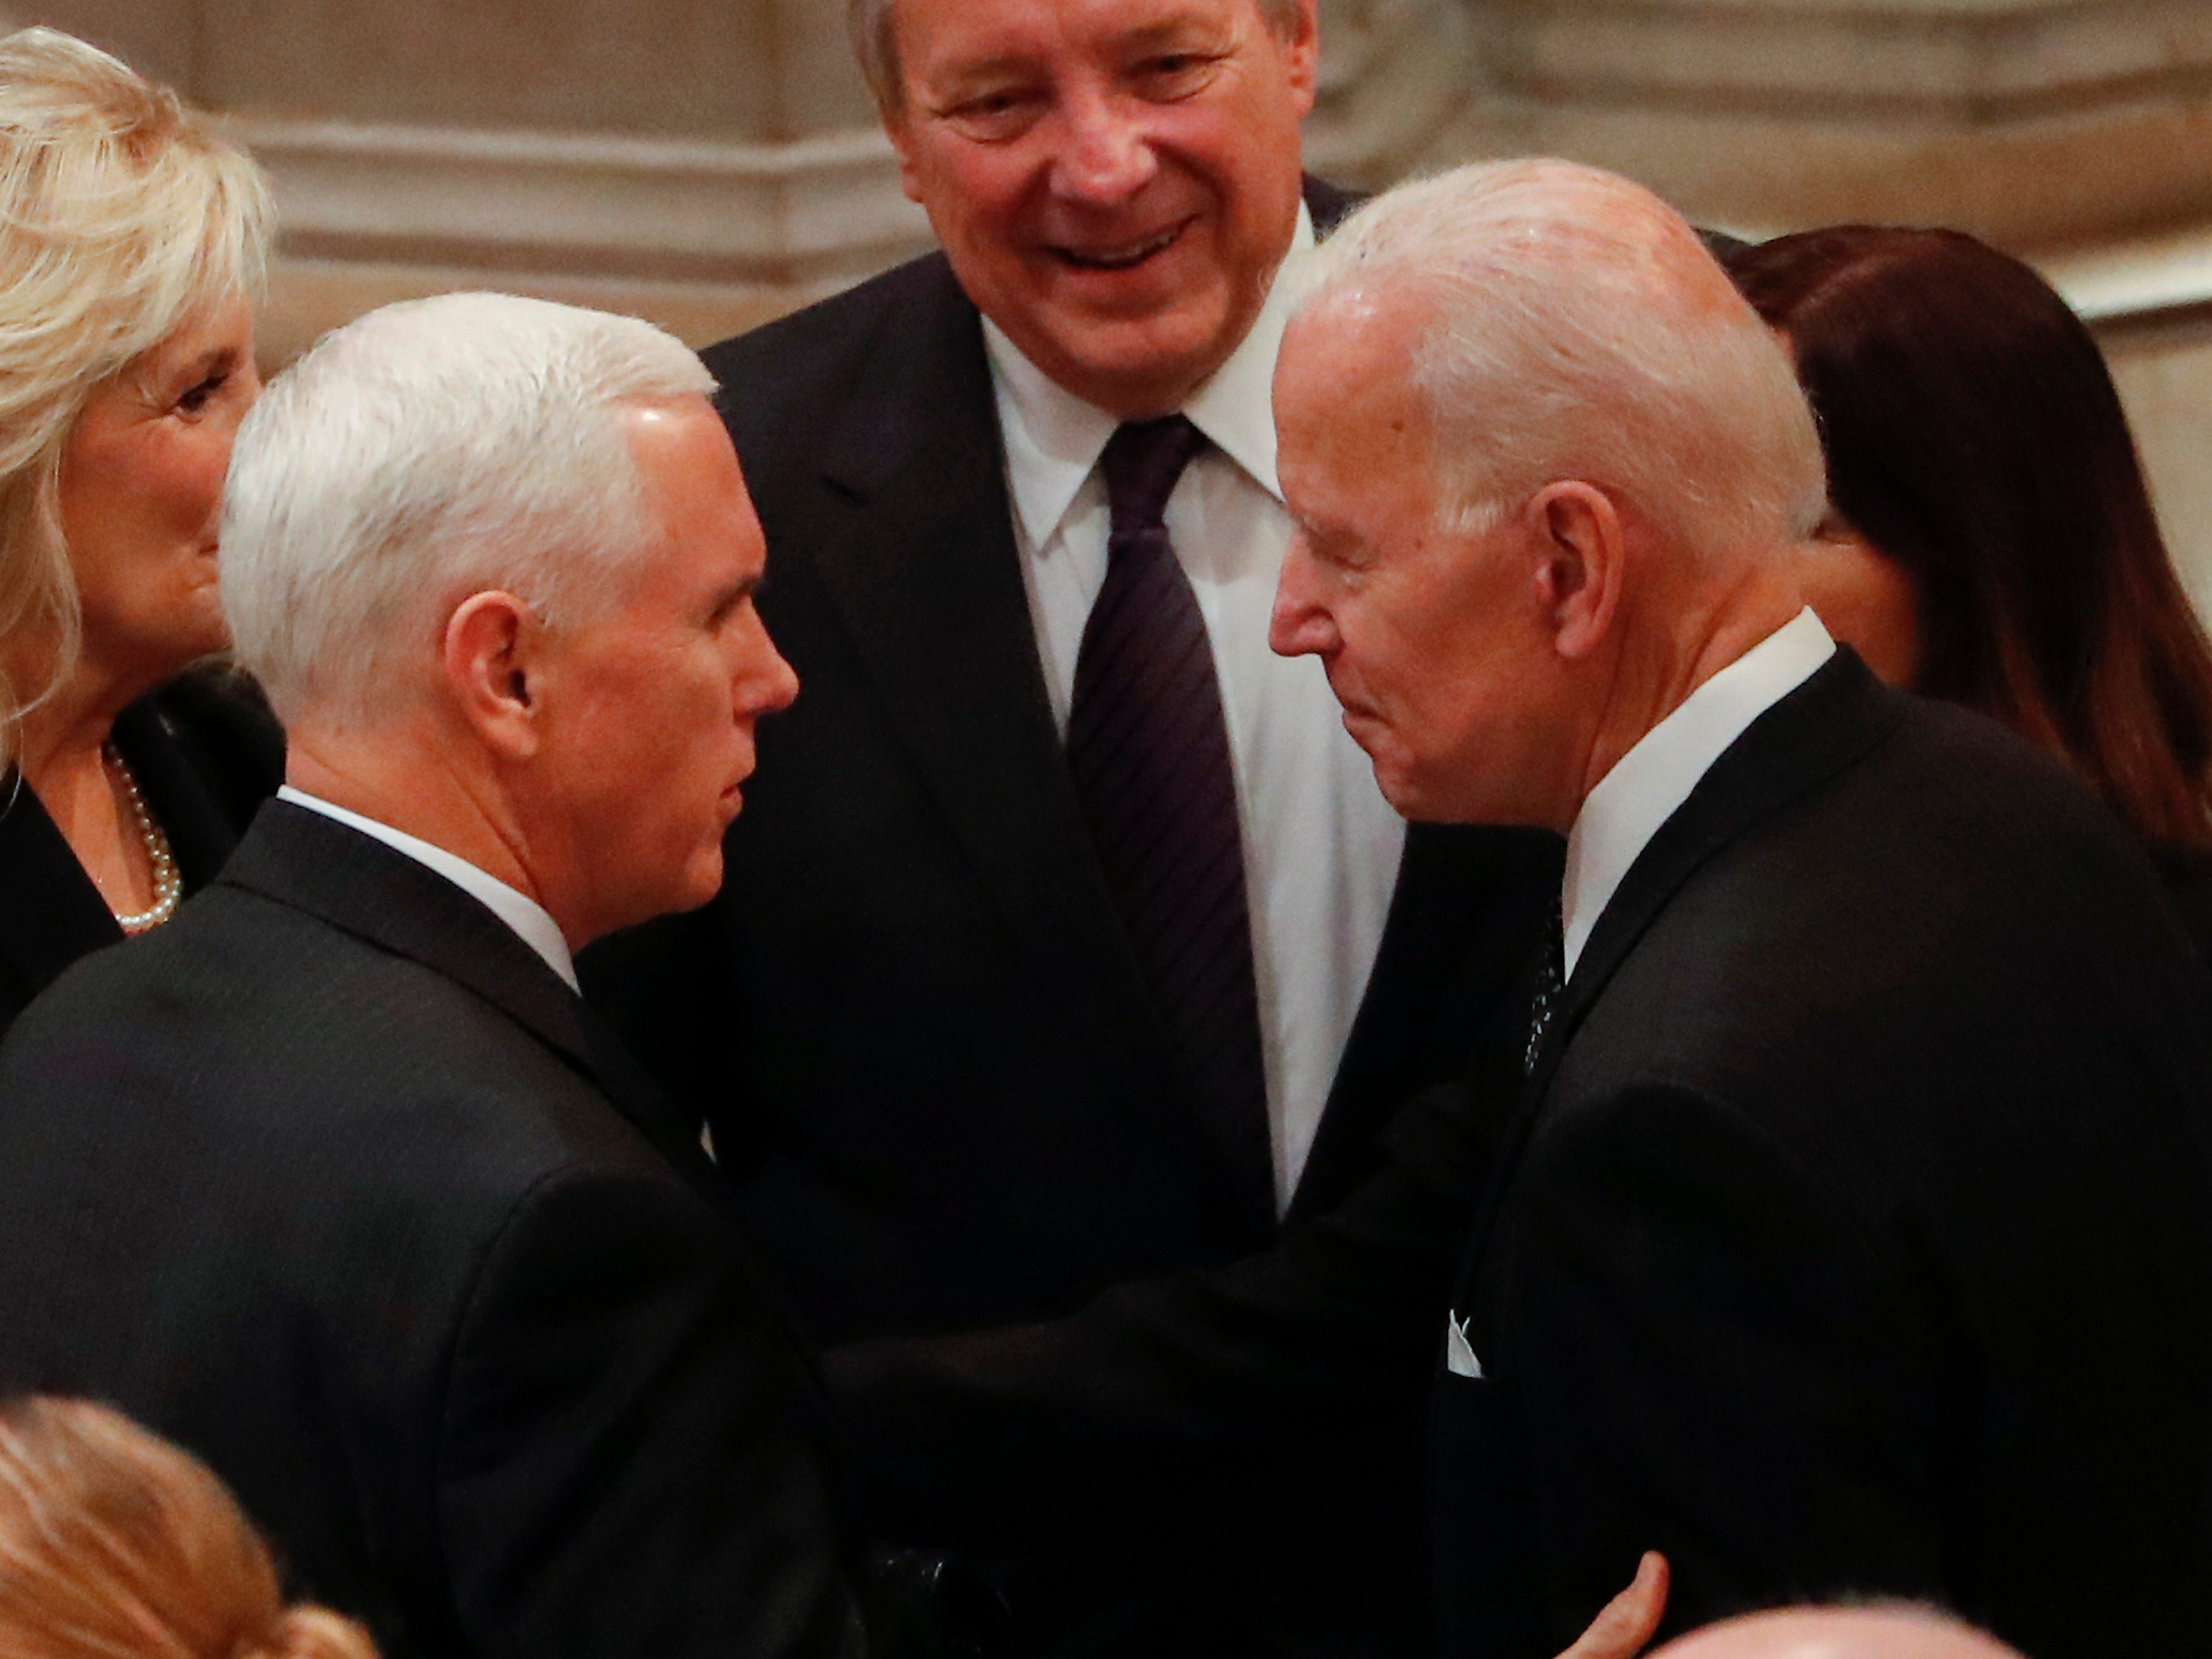 Vice President Mike Pence, left, greets former Vice President Joe Biden as they arrive for the funeral services for former President George H. W. Bush at the National Cathedral, in Washington, Dec. 5, 2018.